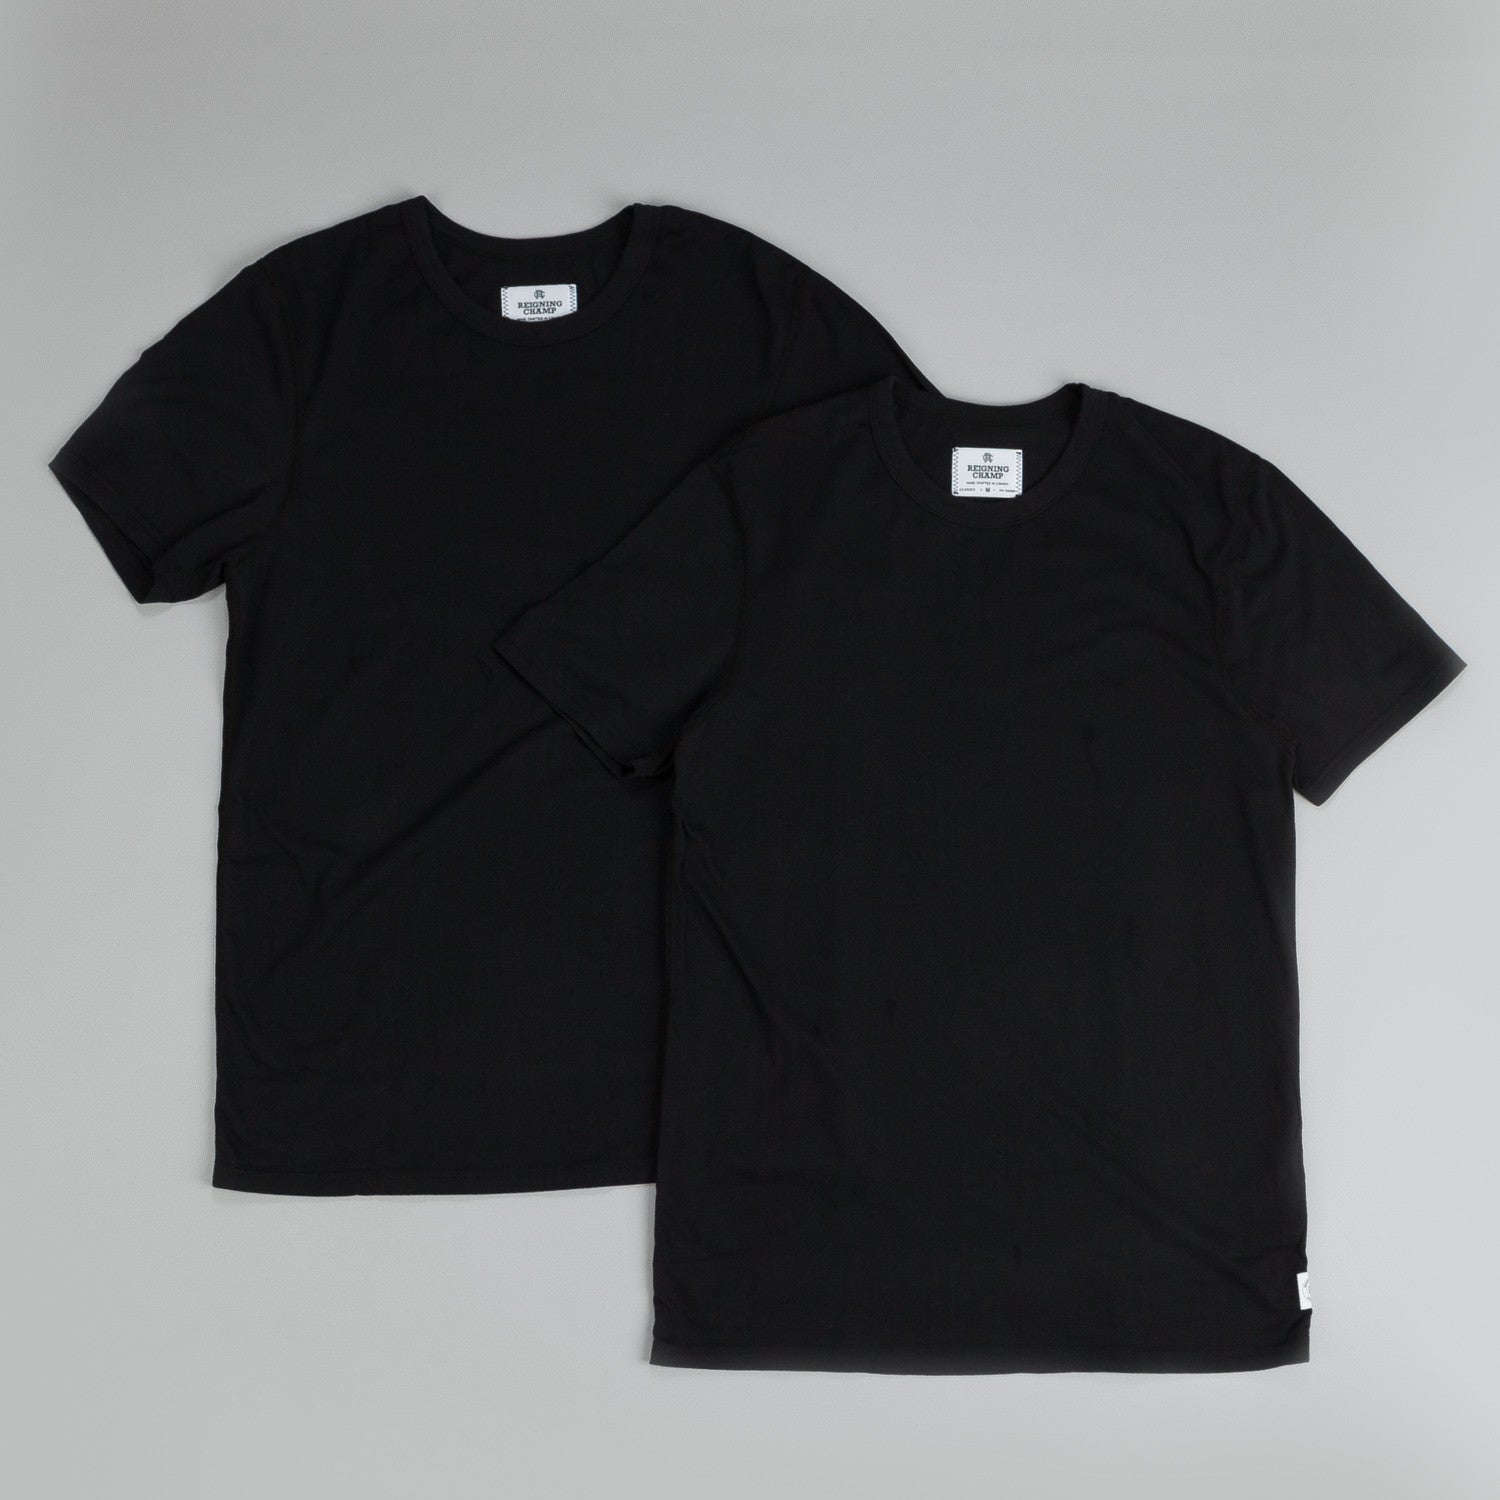 Reigning Champ 2-Pack T Shirts Black